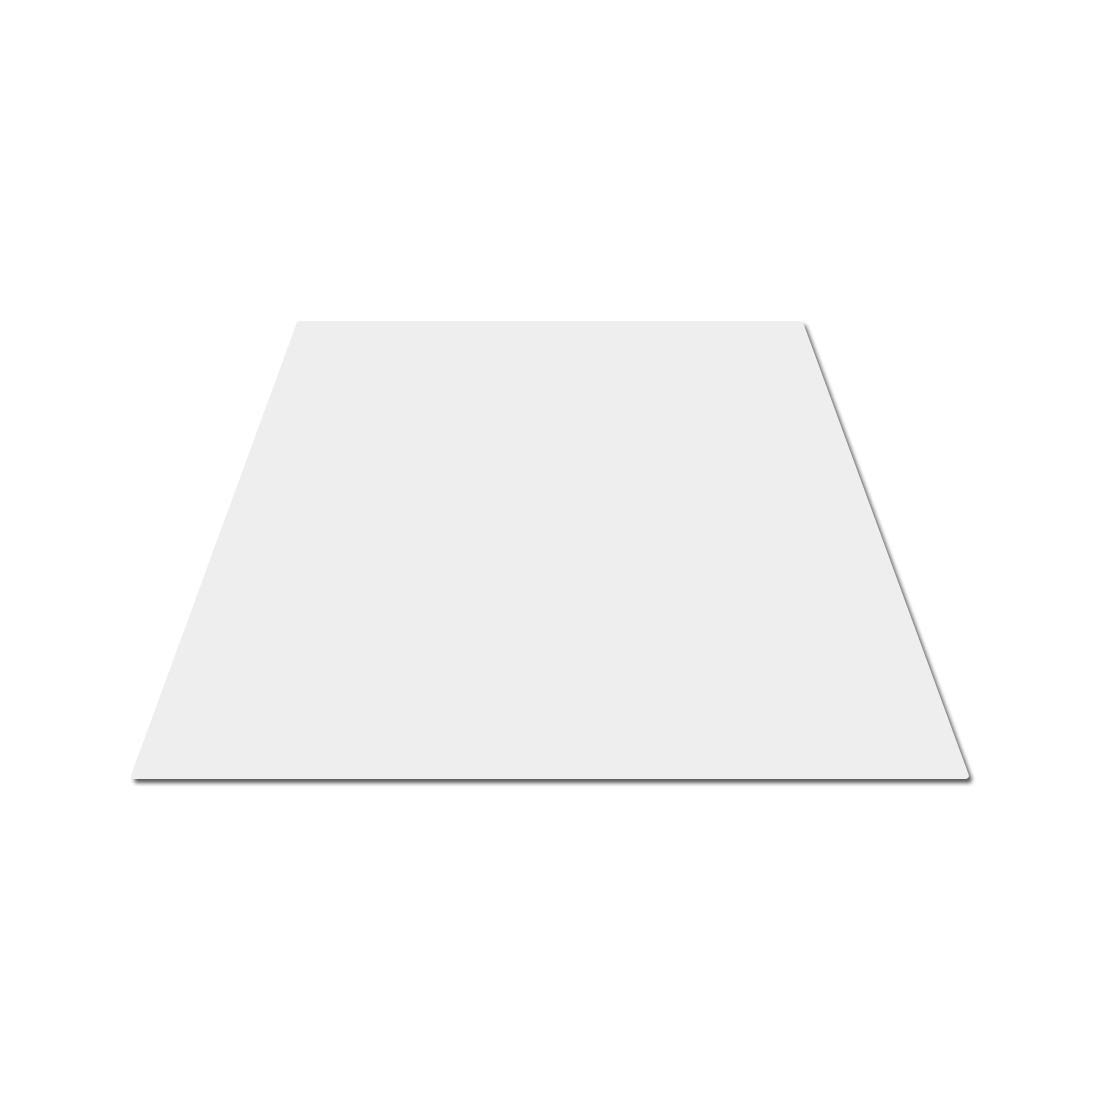 Glass Printer Bed 235x235x4.0mm Borosilicate Glass 3D Printer Glass Print Platforms for Ender 5/Ender 3/Ender 3 Pro